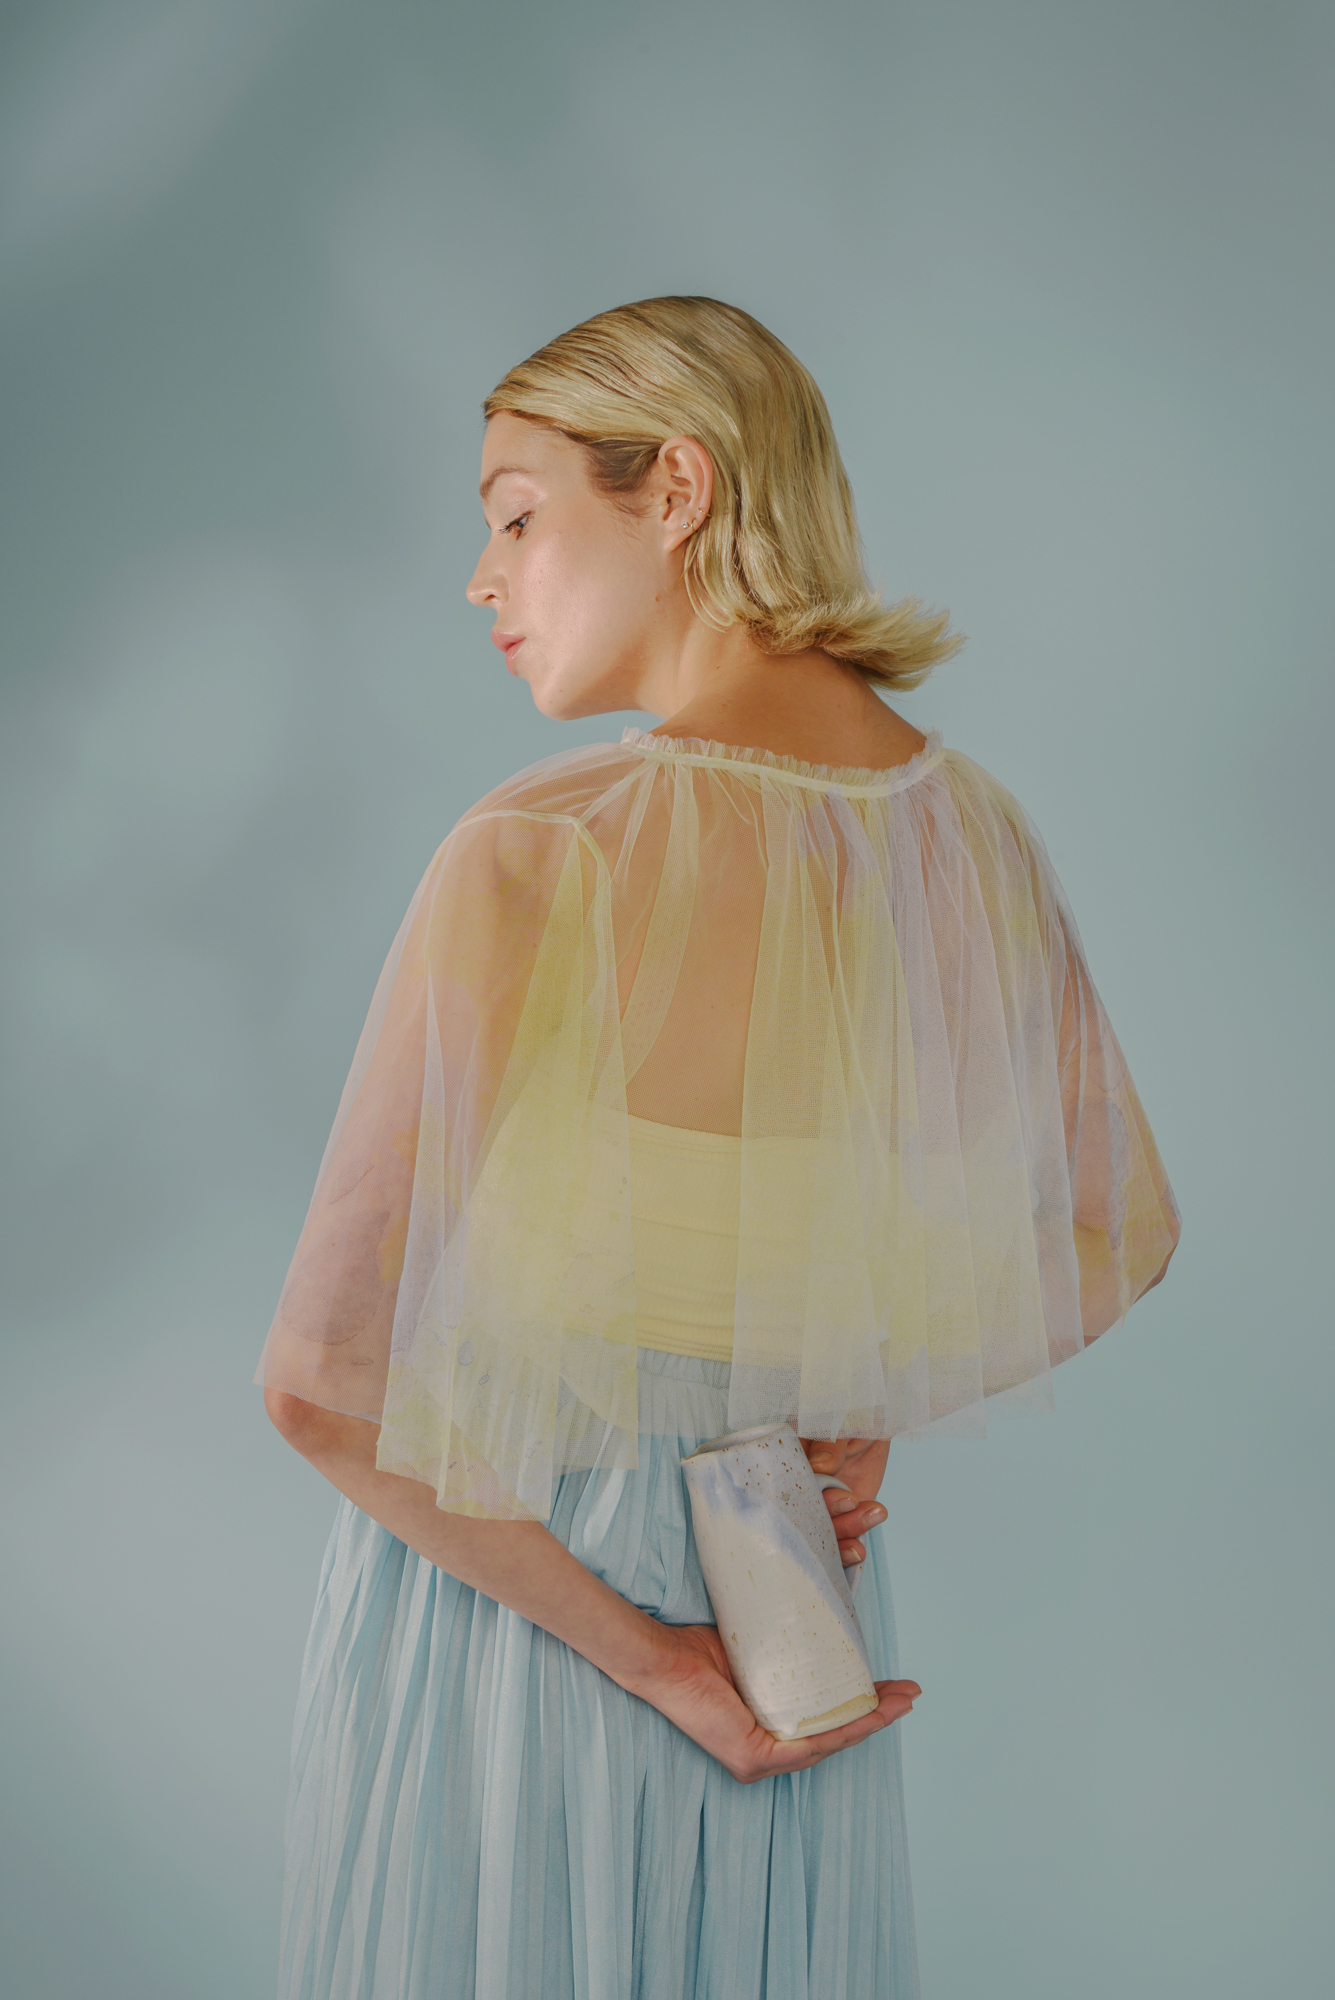 Raw Edge Cut Top by Edward Mongzar on curated-crowd.com